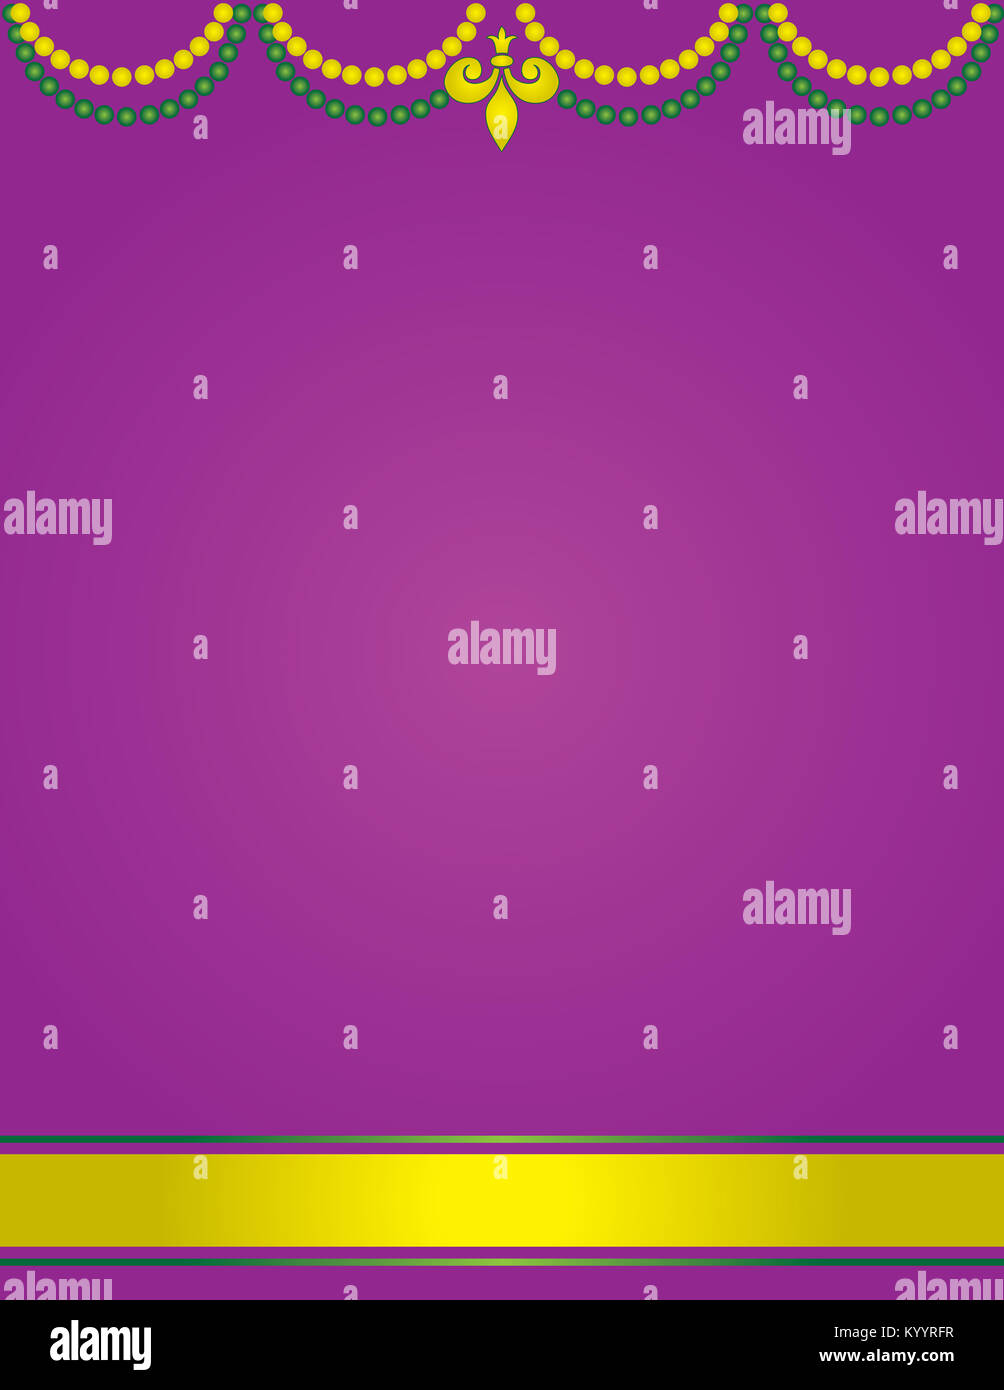 blank mardi gras or fat tuesday poster template with beads stock